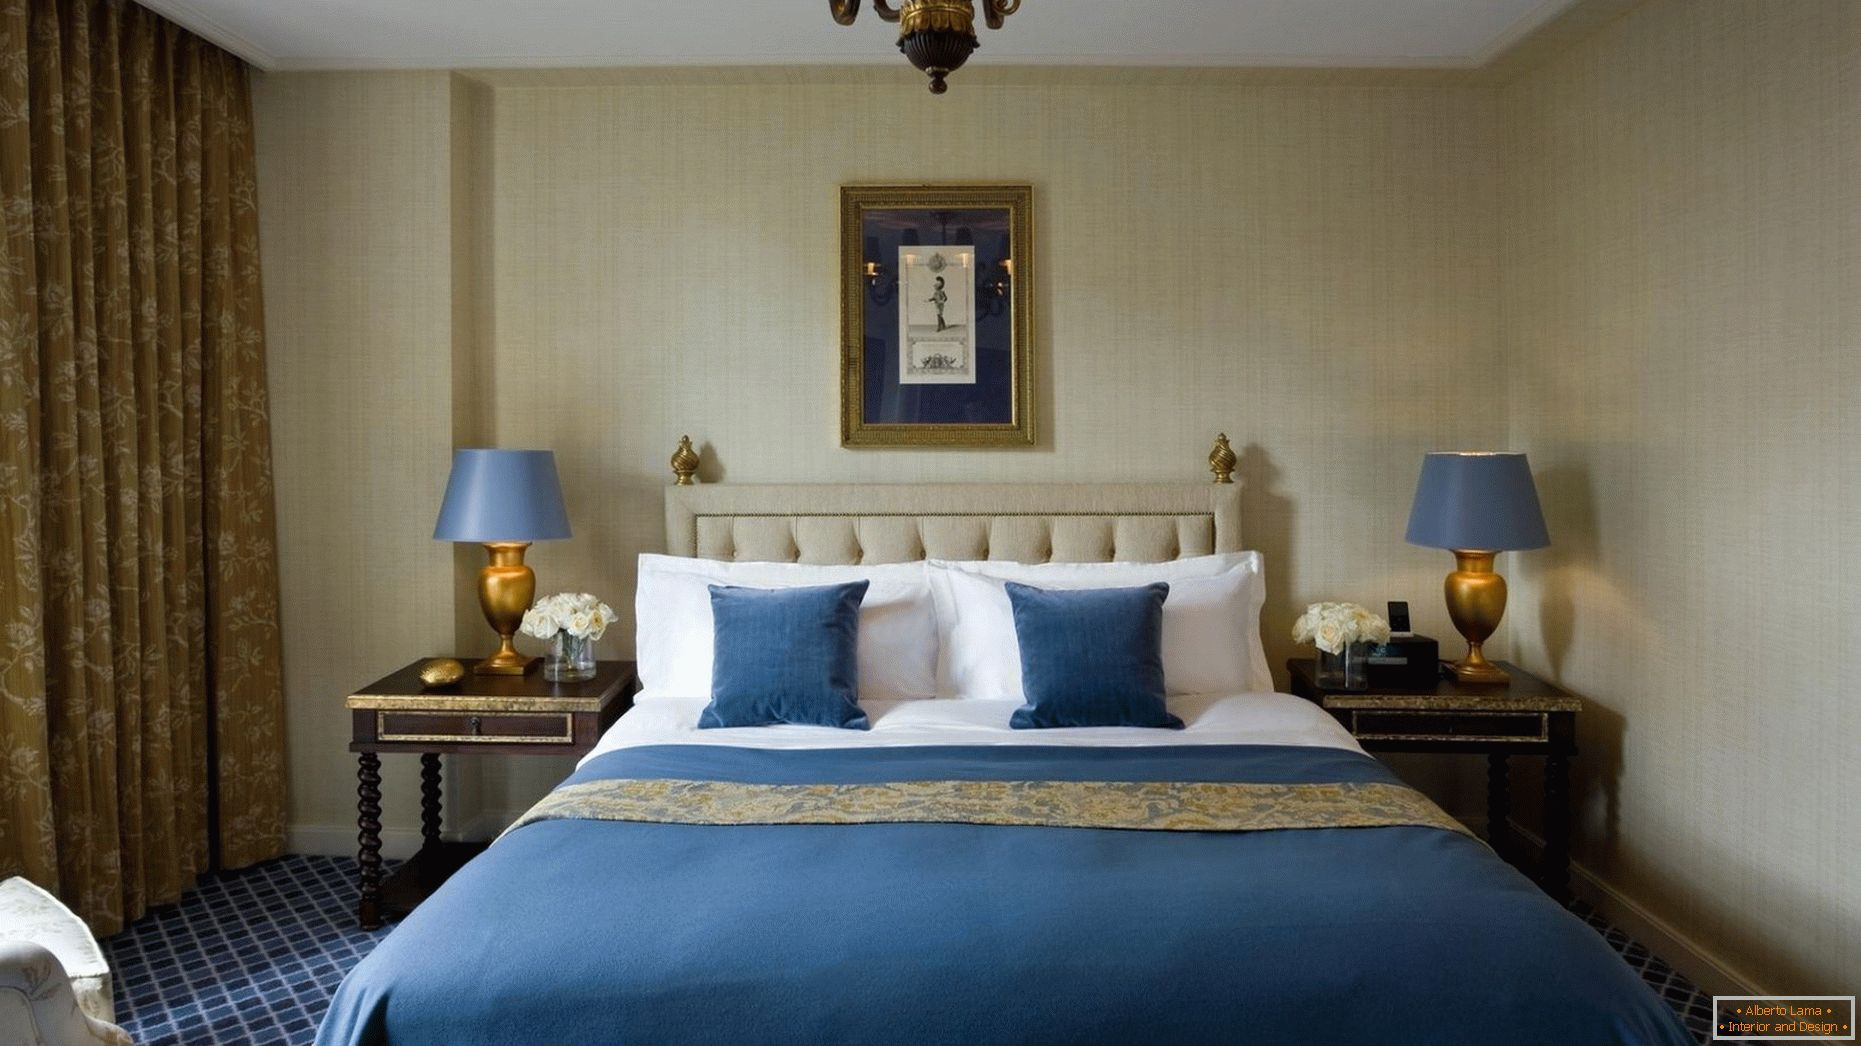 Blue and gold shades in the interior of the bedroom